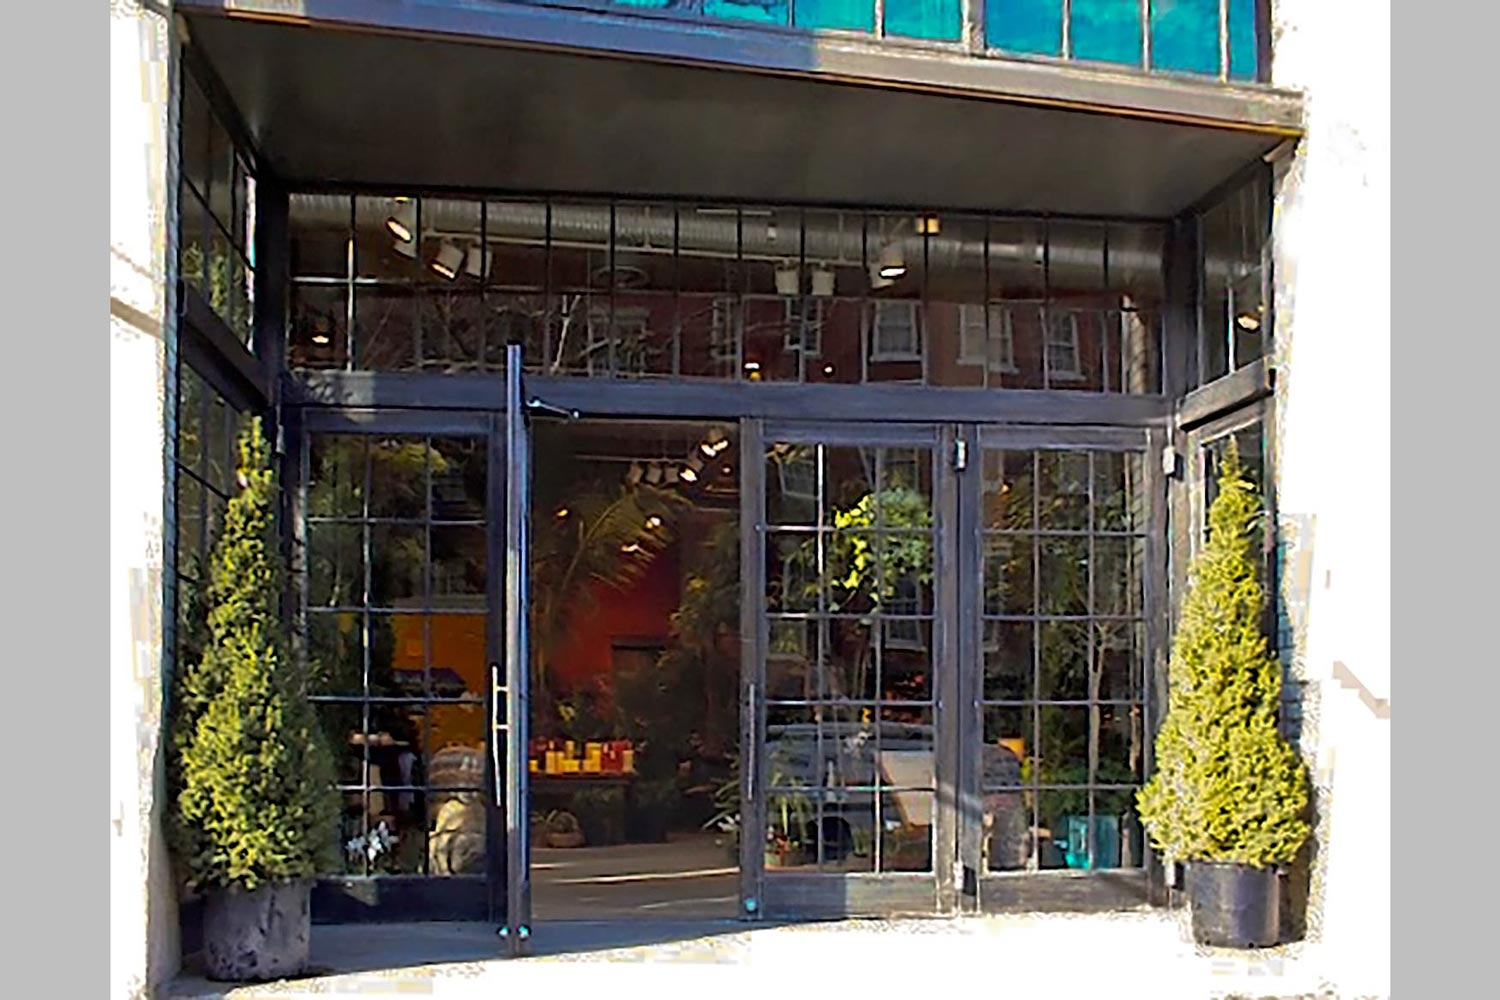 OCV introduced a custom steel and glass facade to dissolve the storefront threshold.